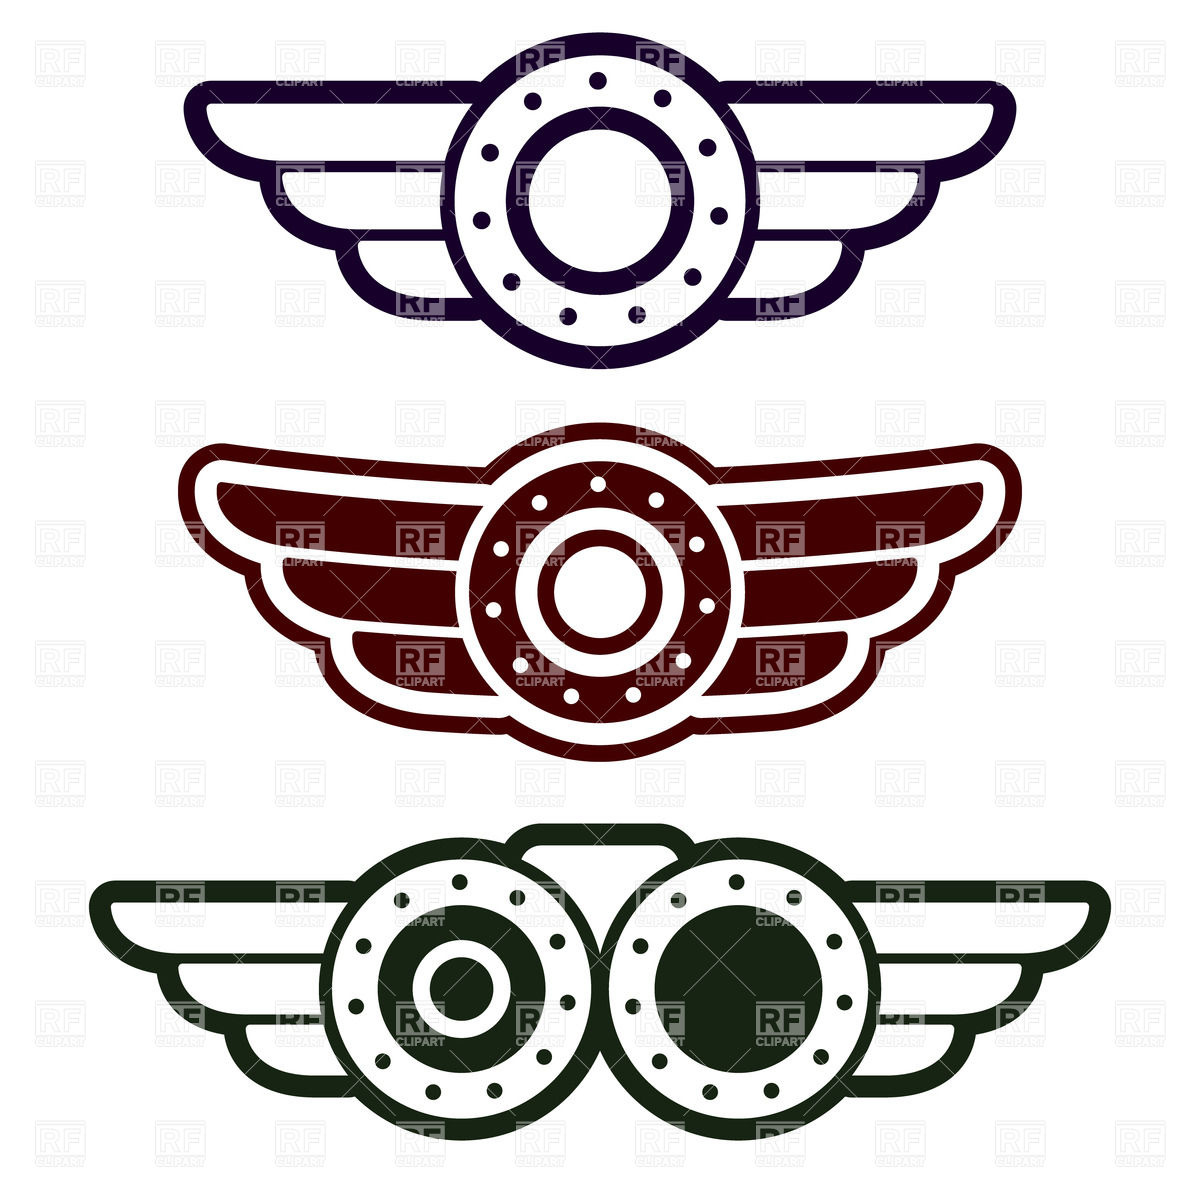 Free Pilot Wings Cliparts, Download Free Clip Art, Free Clip.